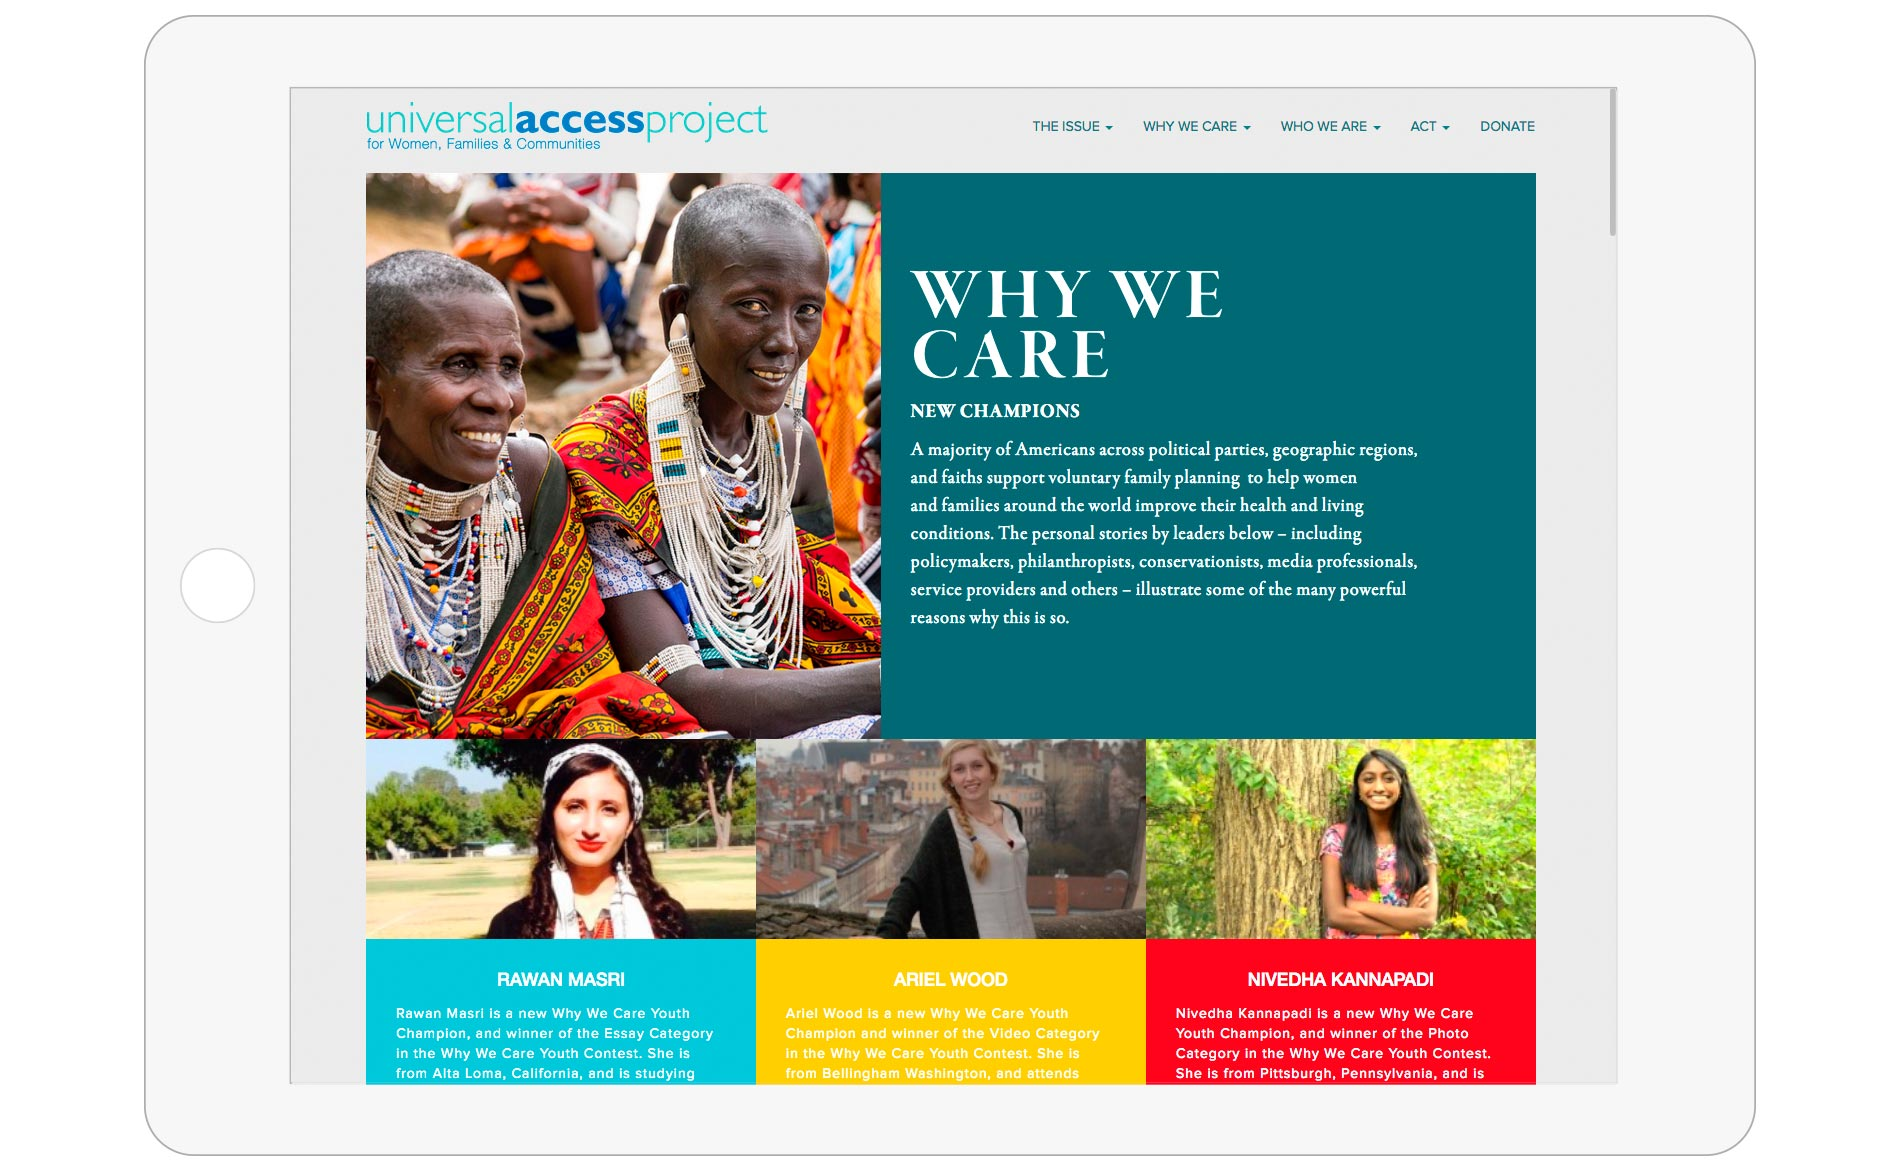 Universal Access Project - Website Design - Homepage